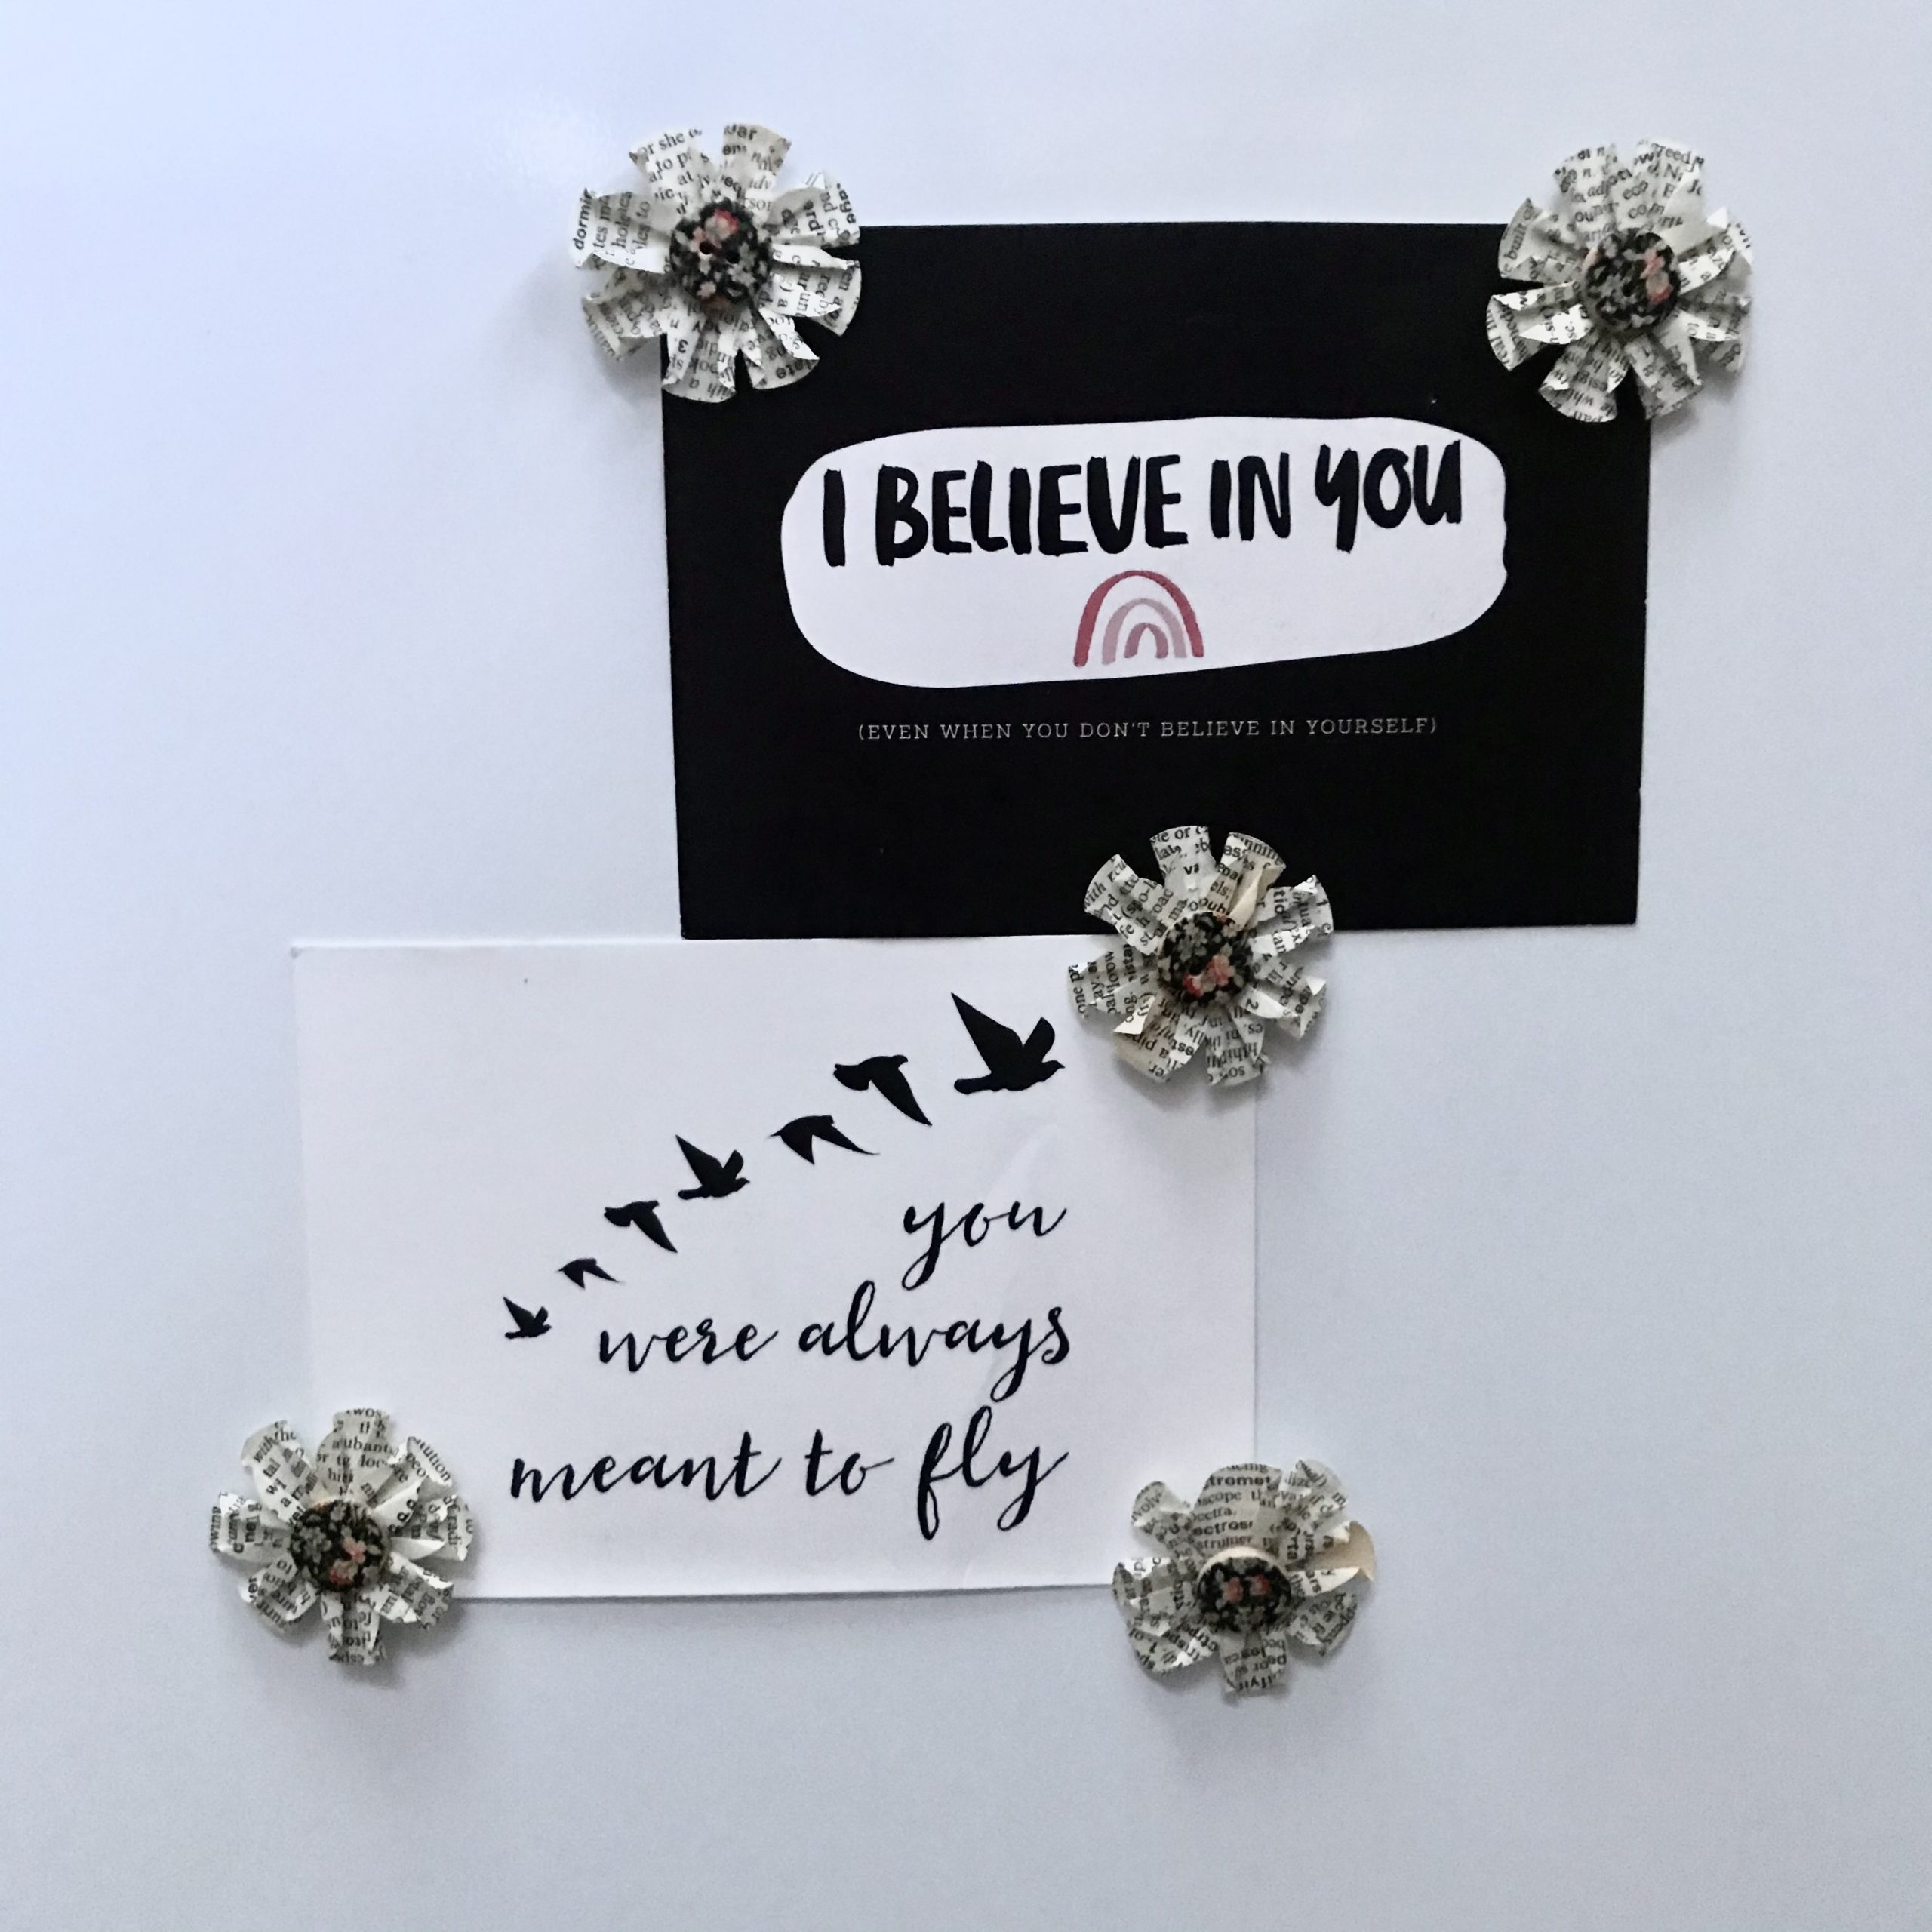 Upcycled paper and button magnets